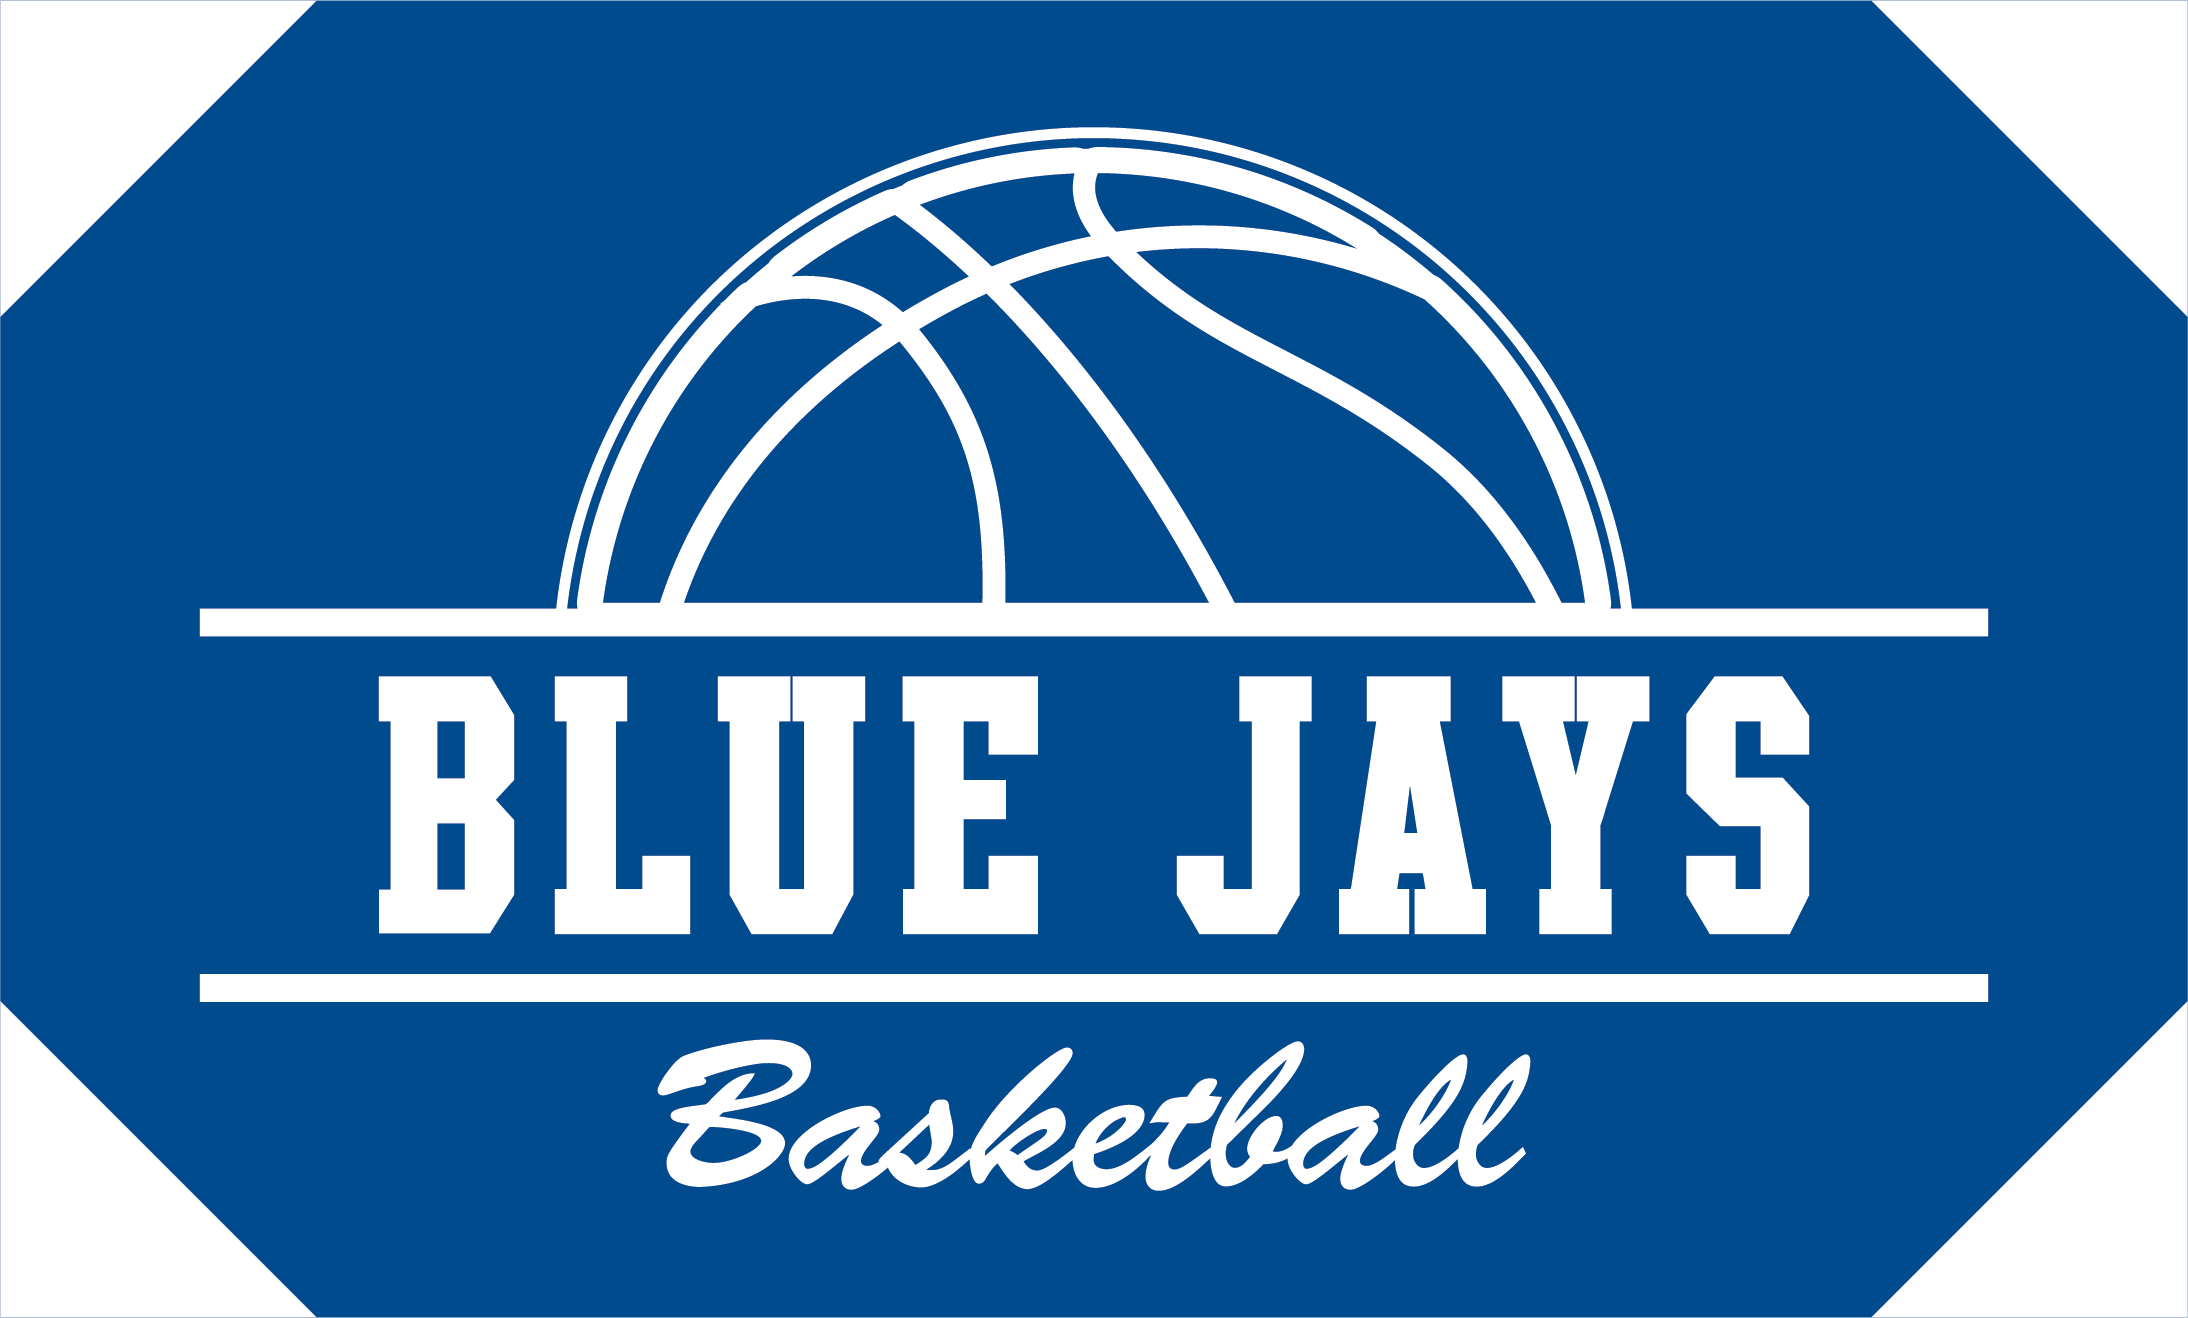 Blue Jays Basketball